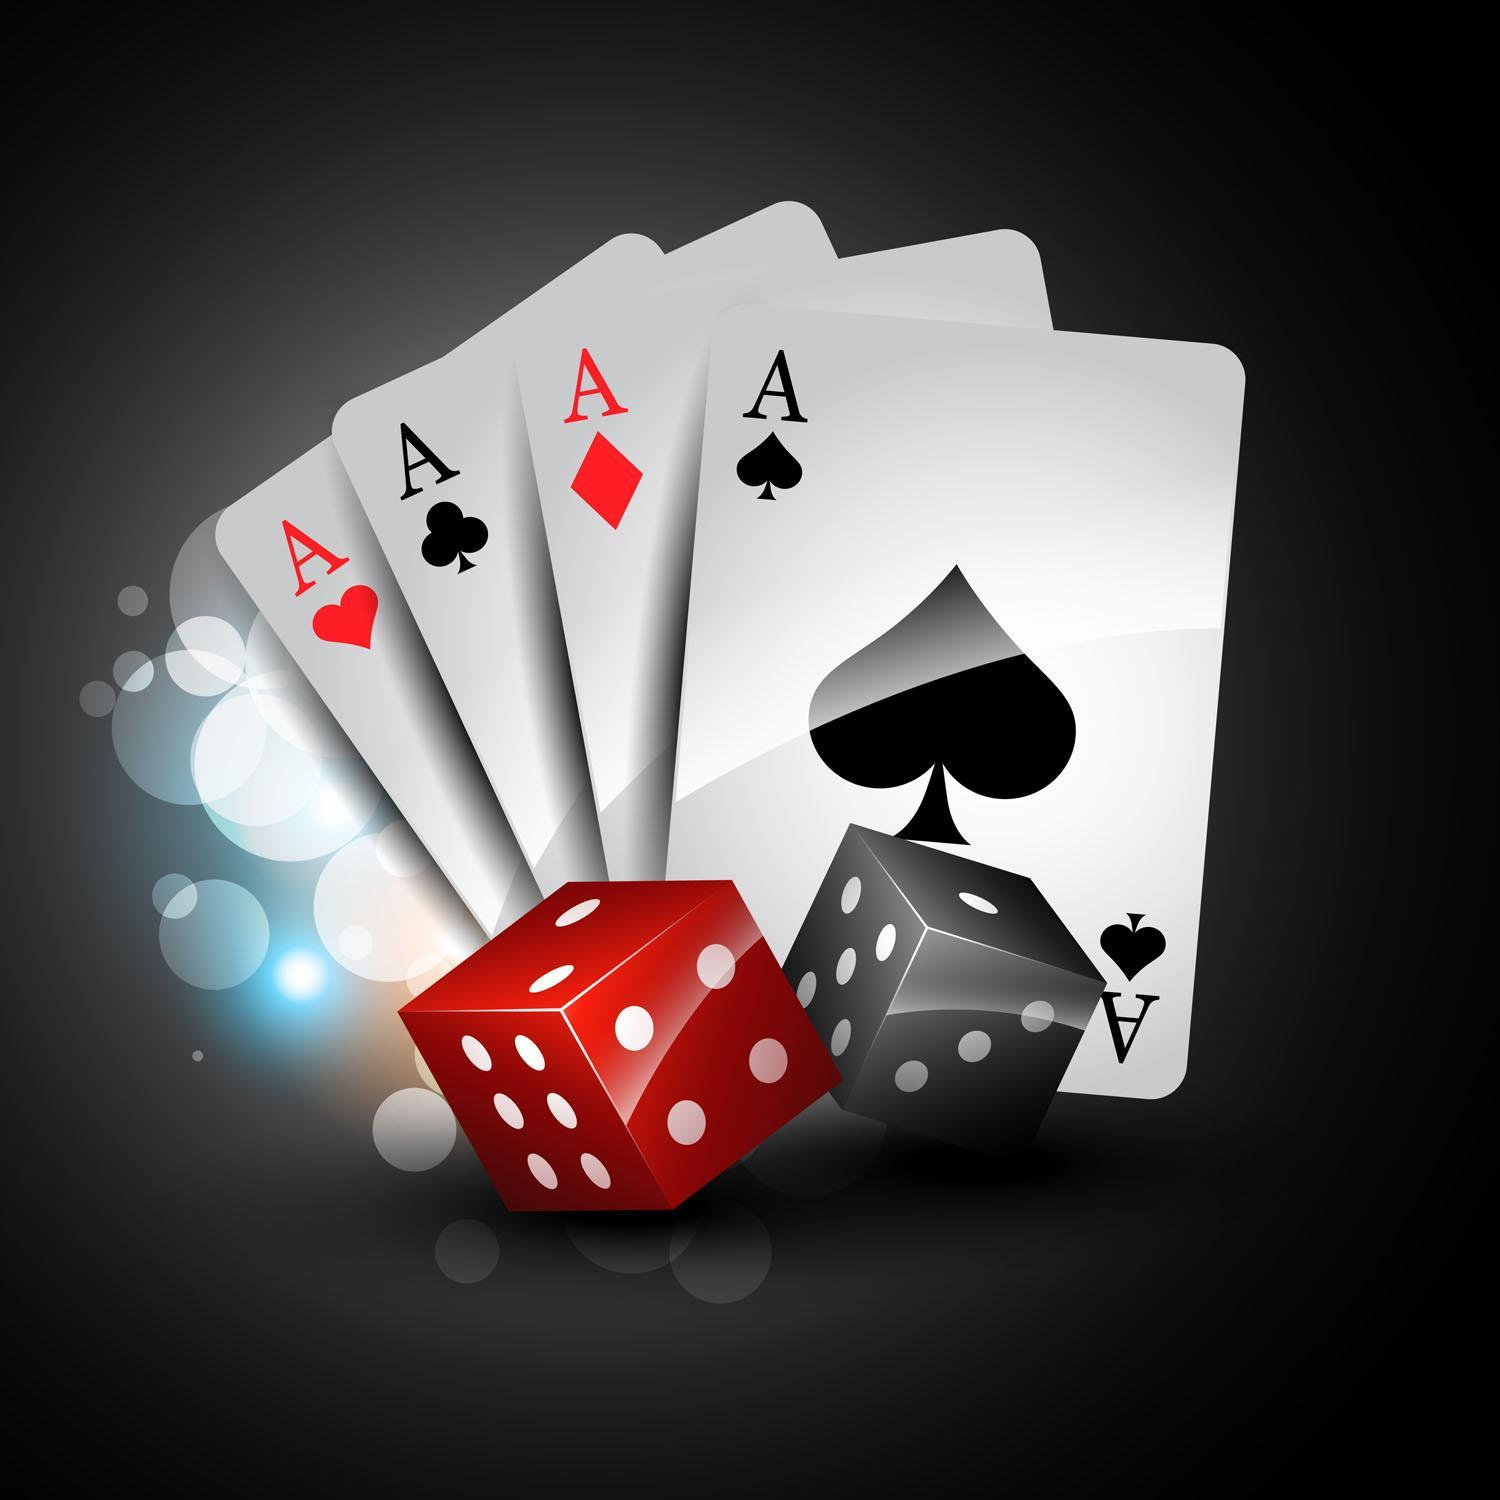 Poker Cards Wallpapers - Top Free Poker Cards Backgrounds ...